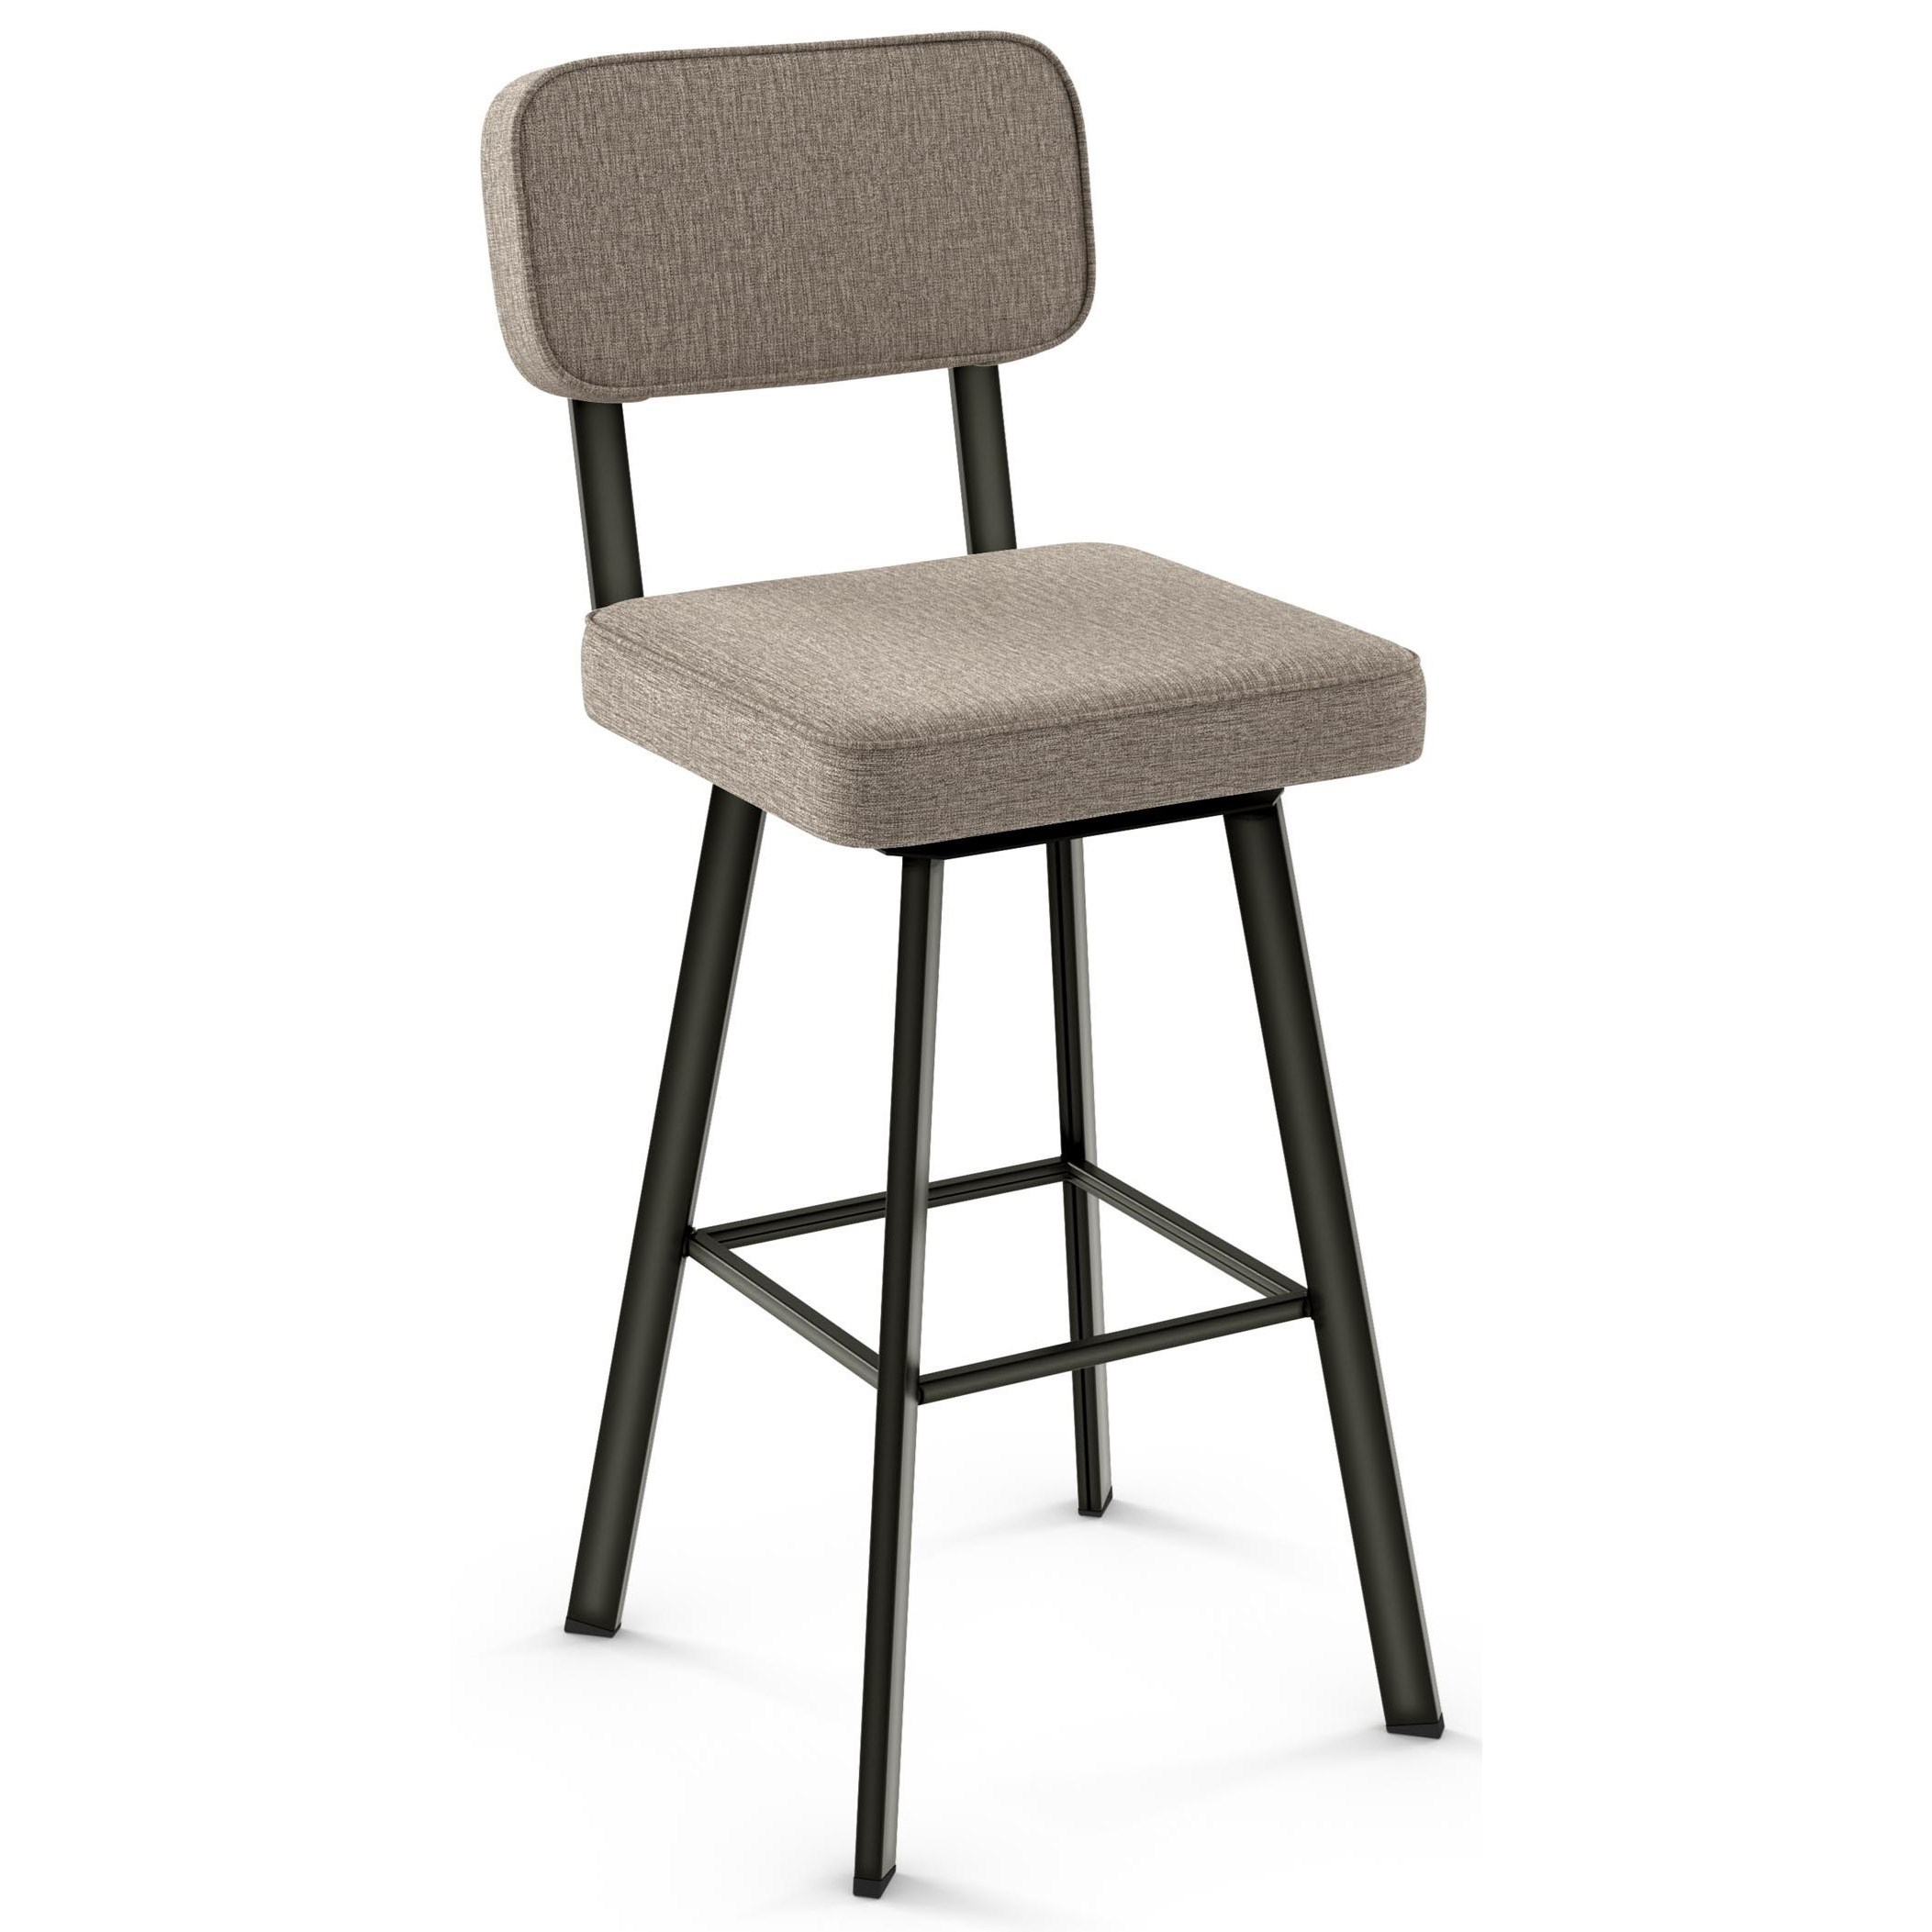 2257 Industrial 41536-26 Upholstered Brixton Swivel Stool